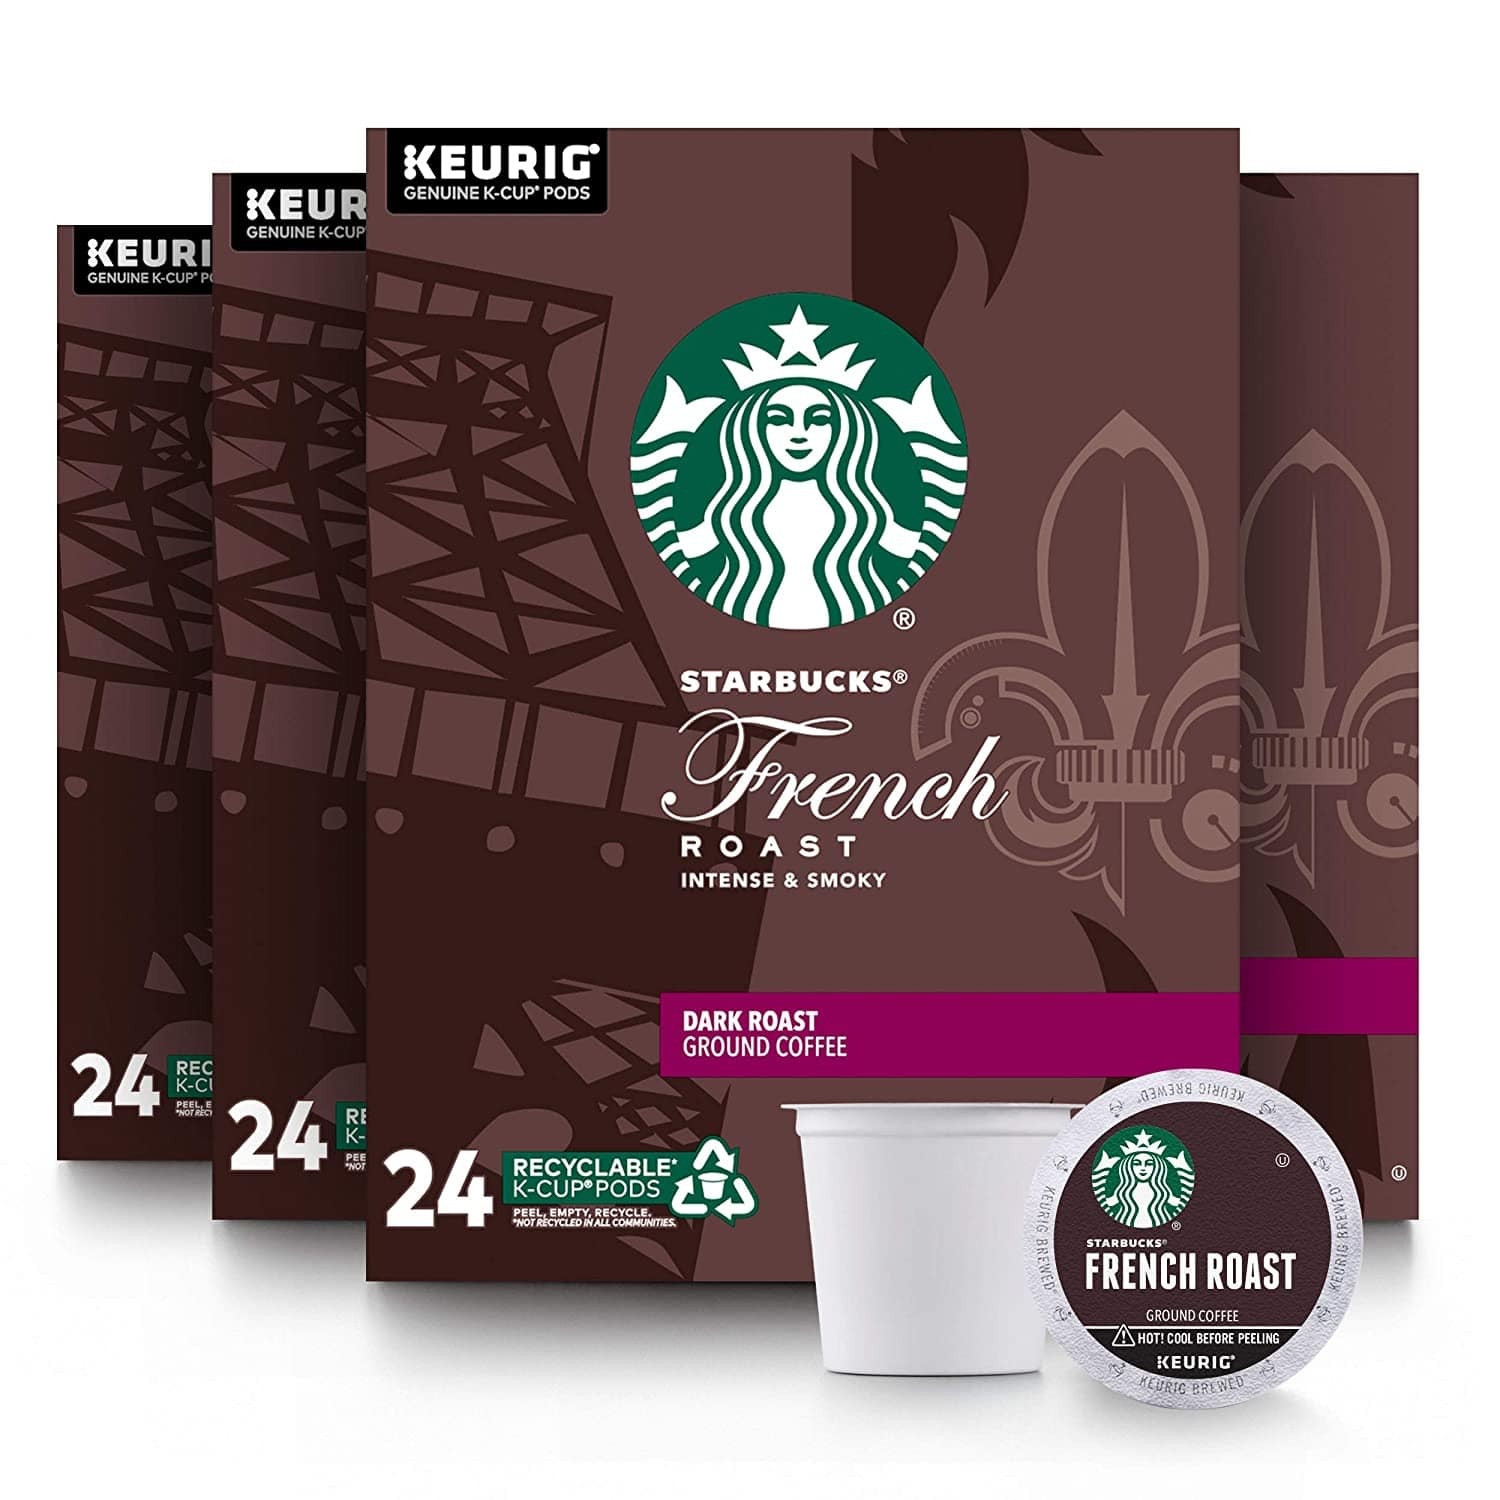 96-Count Starbucks French Roast Coffee K-Cups for Keurig Brewers